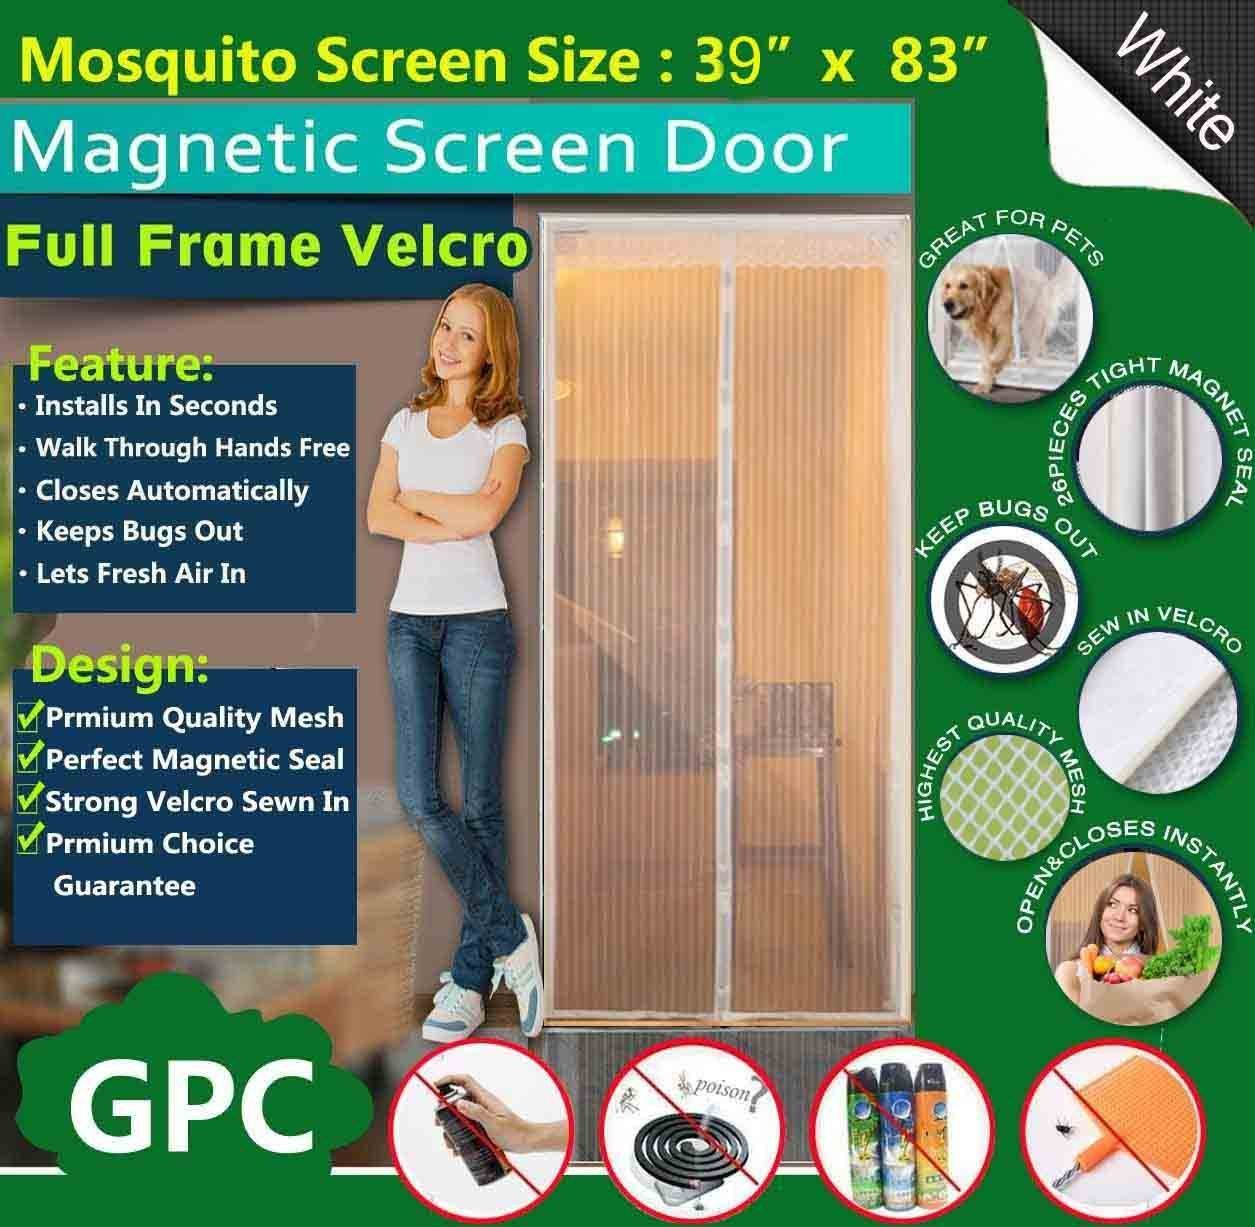 """Meiz Magnetic Screen Door,Mesh Curtain With Full Frame Velcro,Keeps Bugs Out,Lets Fresh Air In,Toddler And Pet Friendly,Fits Door Up To 36"""" x 82"""" (White)"""